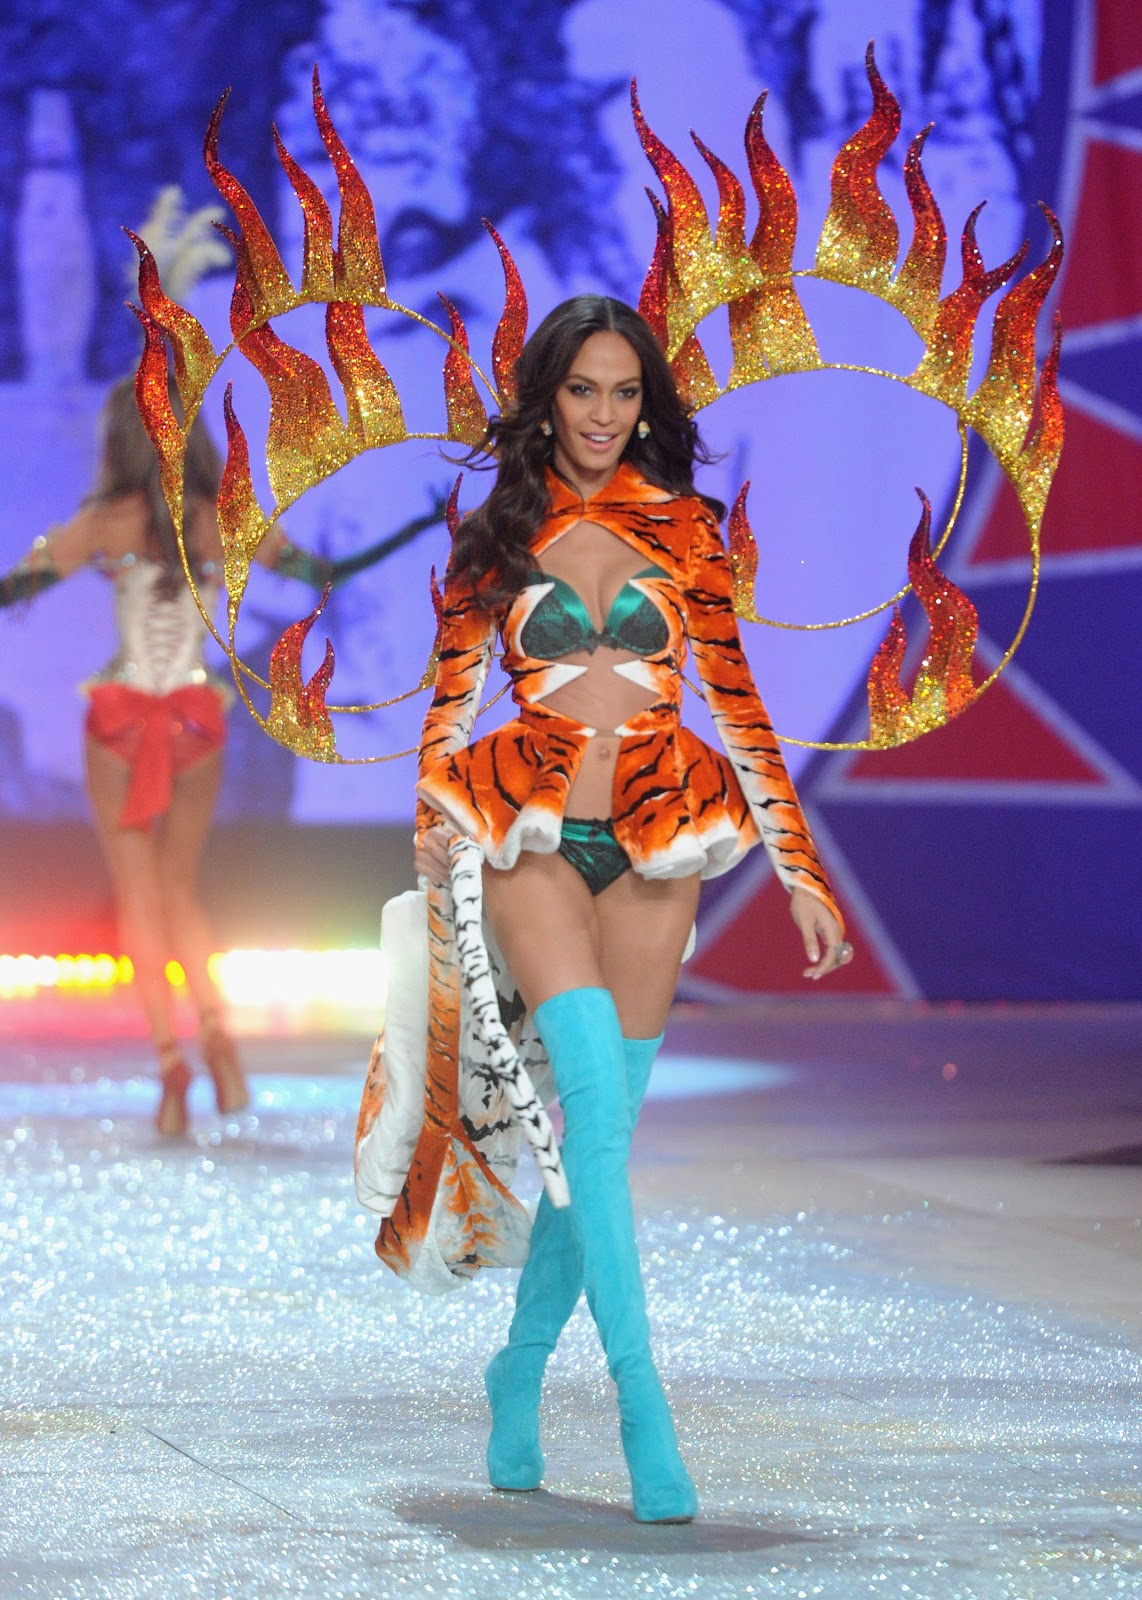 Joan Smalls at the 2012 Victoria's Secret Fashion Show Pics